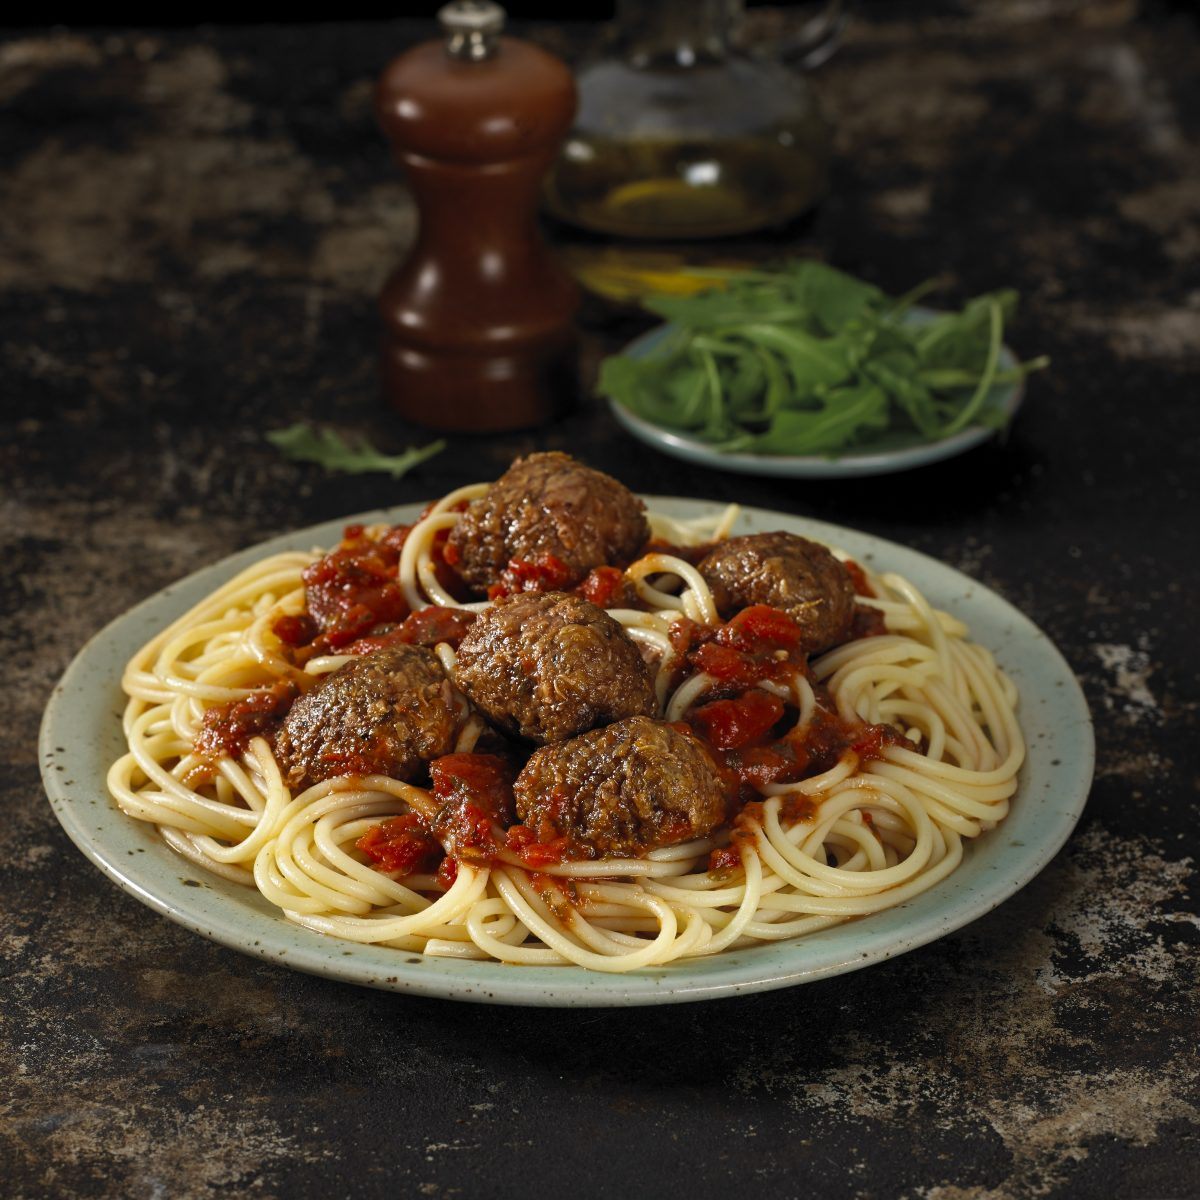 Meat free meatballs with spaghetti